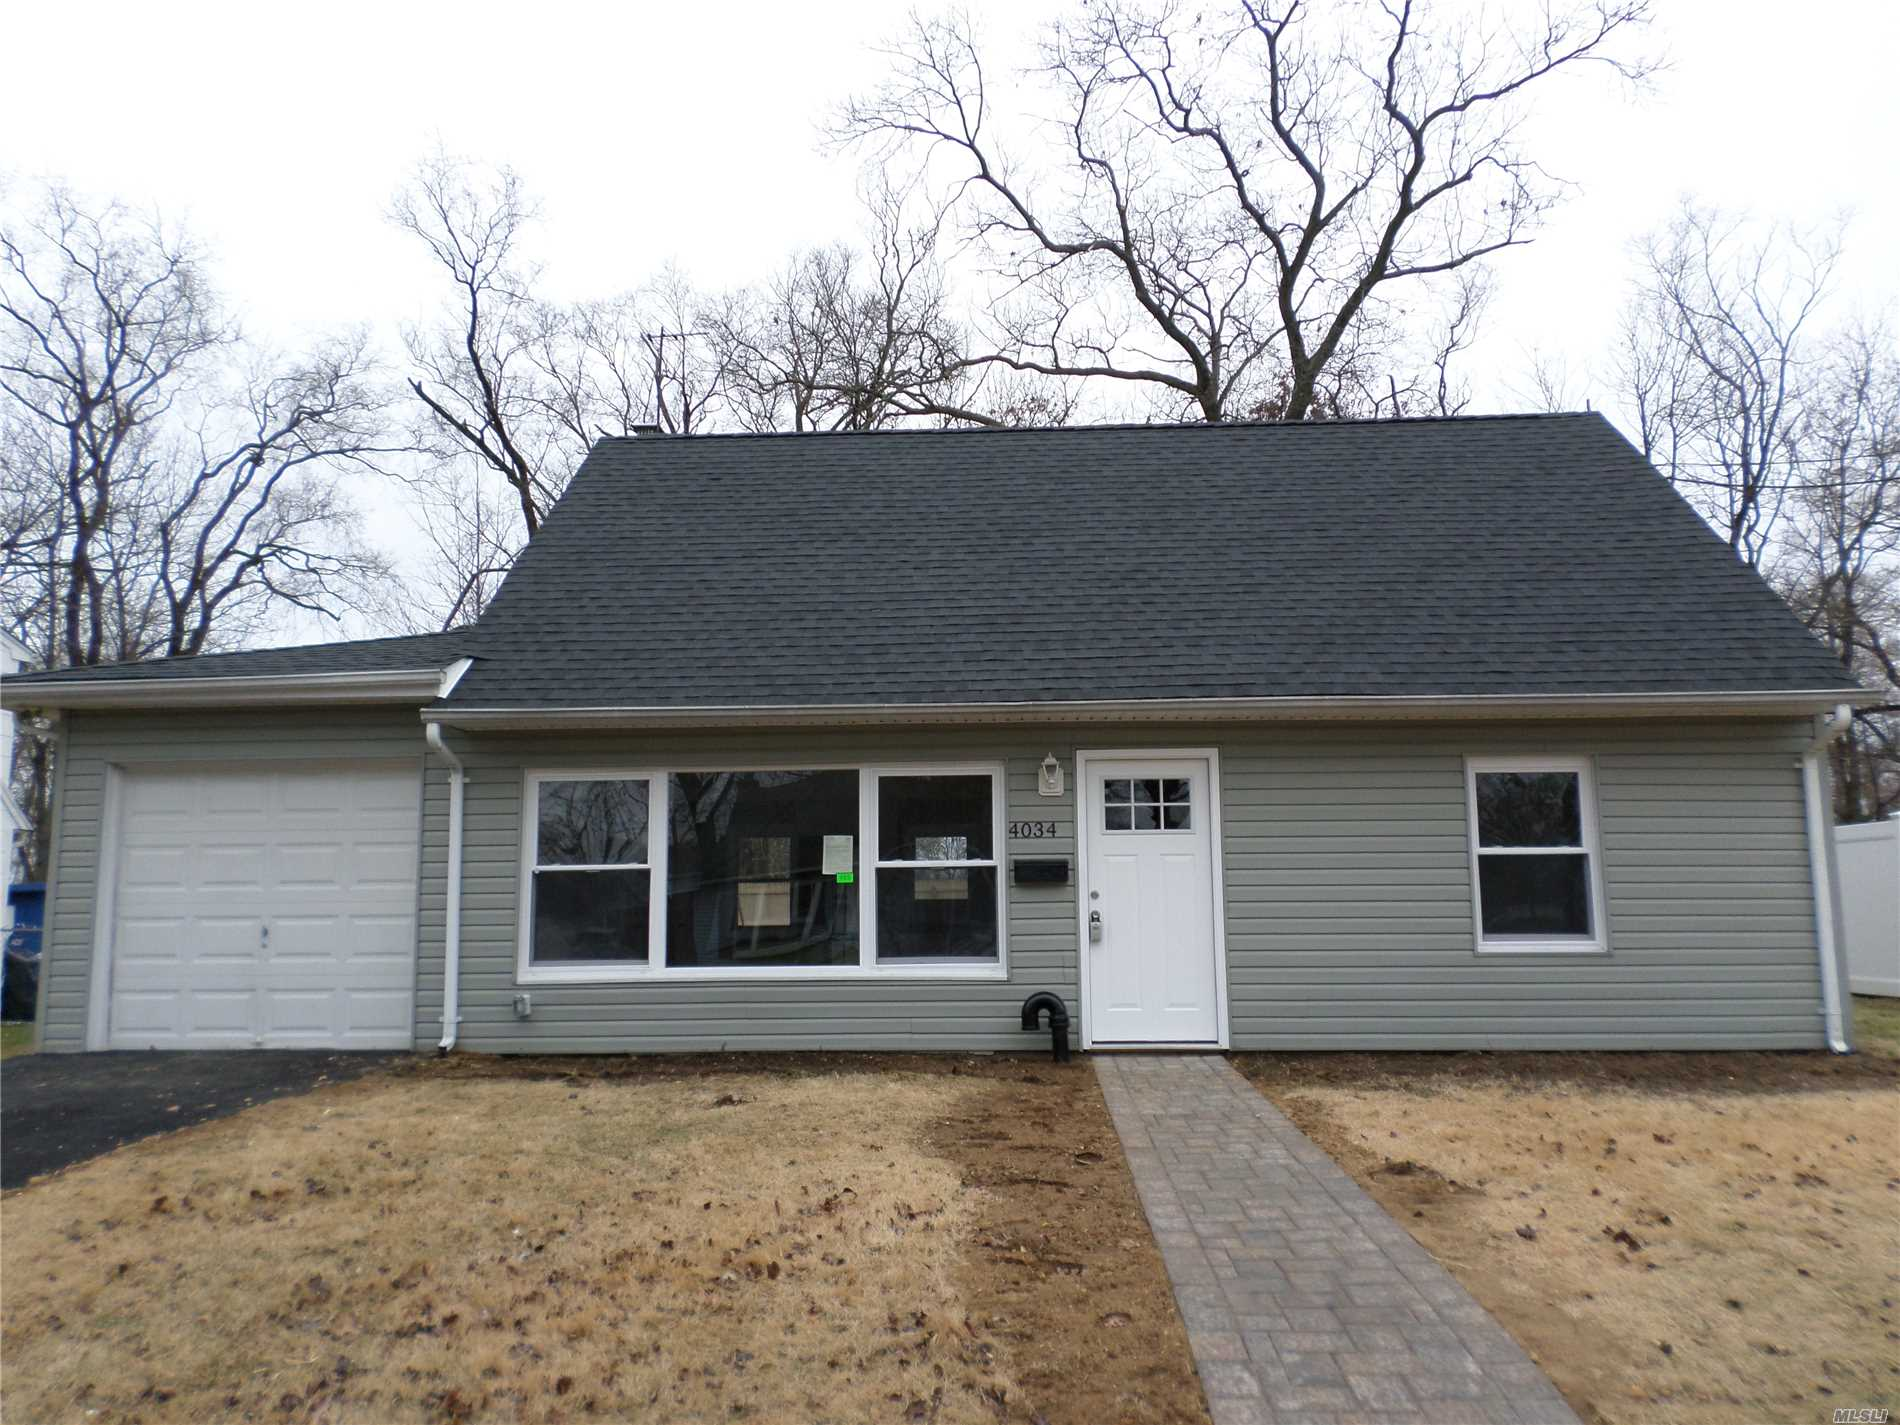 4 Bedrooms, 2 Full Baths, Open Concept. Completely Re-Done! Roof Is Brand New As Well As Windows And All Of The Interior Finishes. Siding 8 Yrs Old. Beauty! First Floor Radiant Heat Throughout. Won't Last!